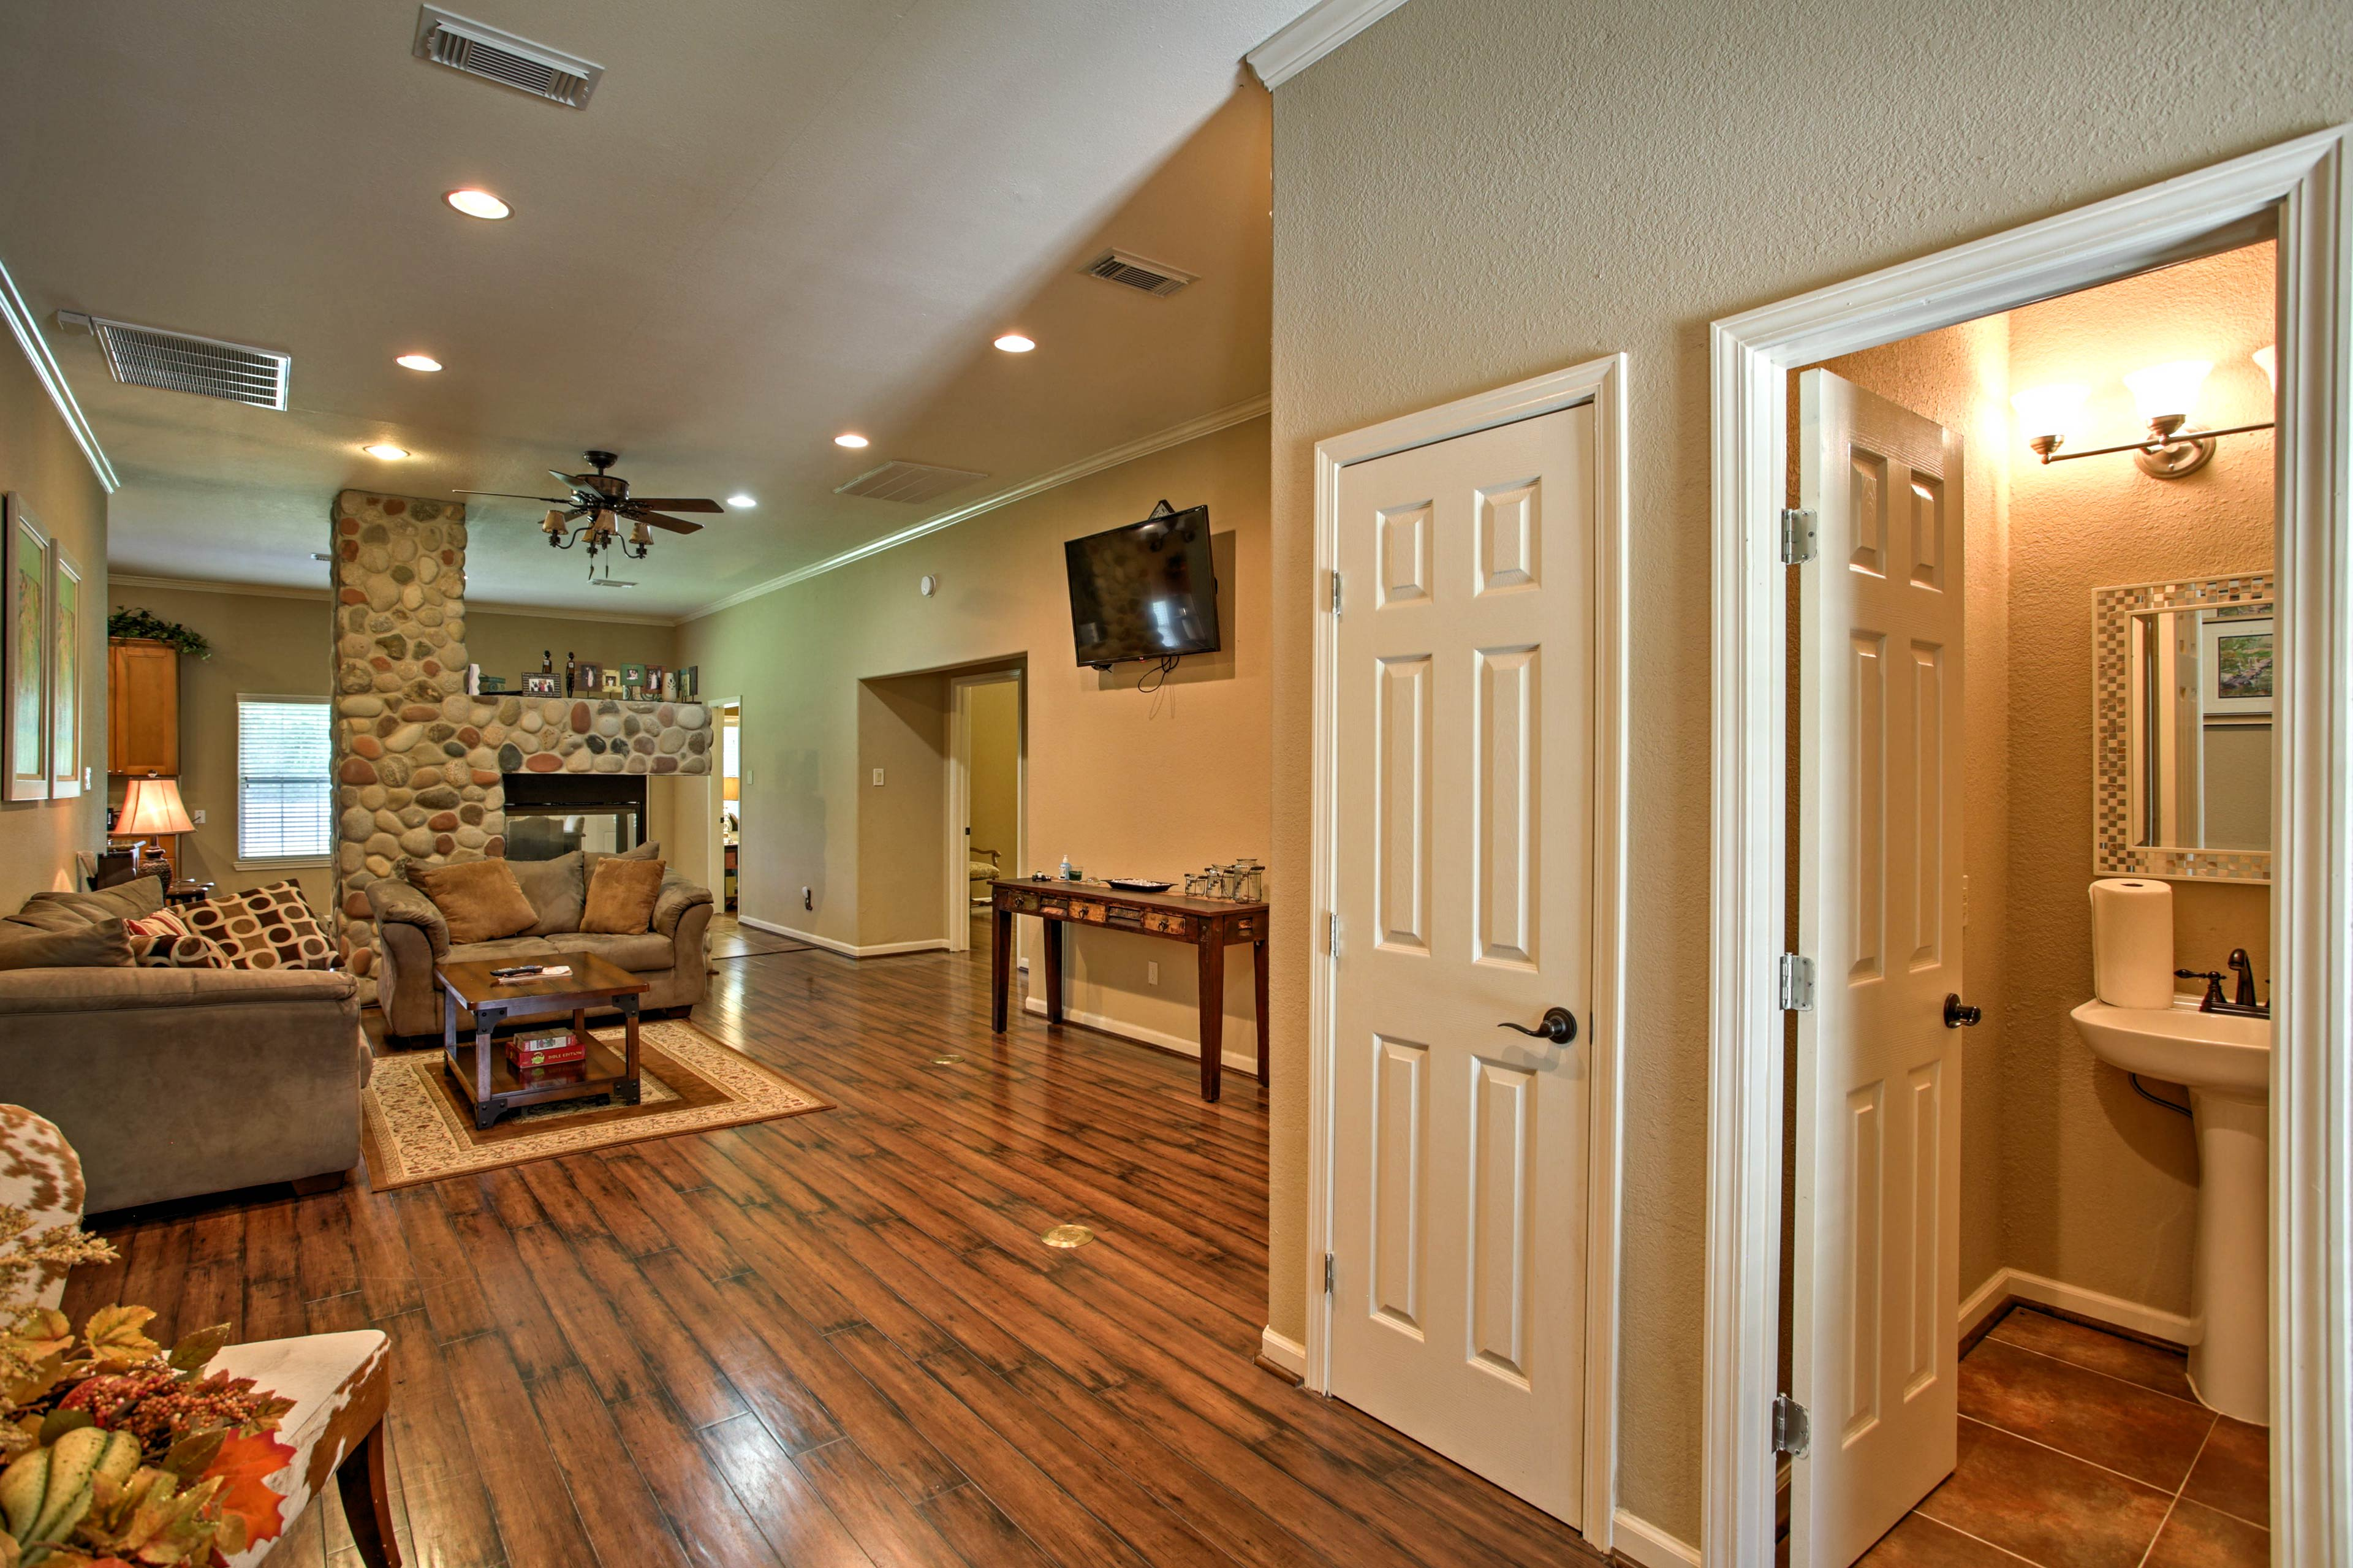 There's plenty of space for everyone in this living room!